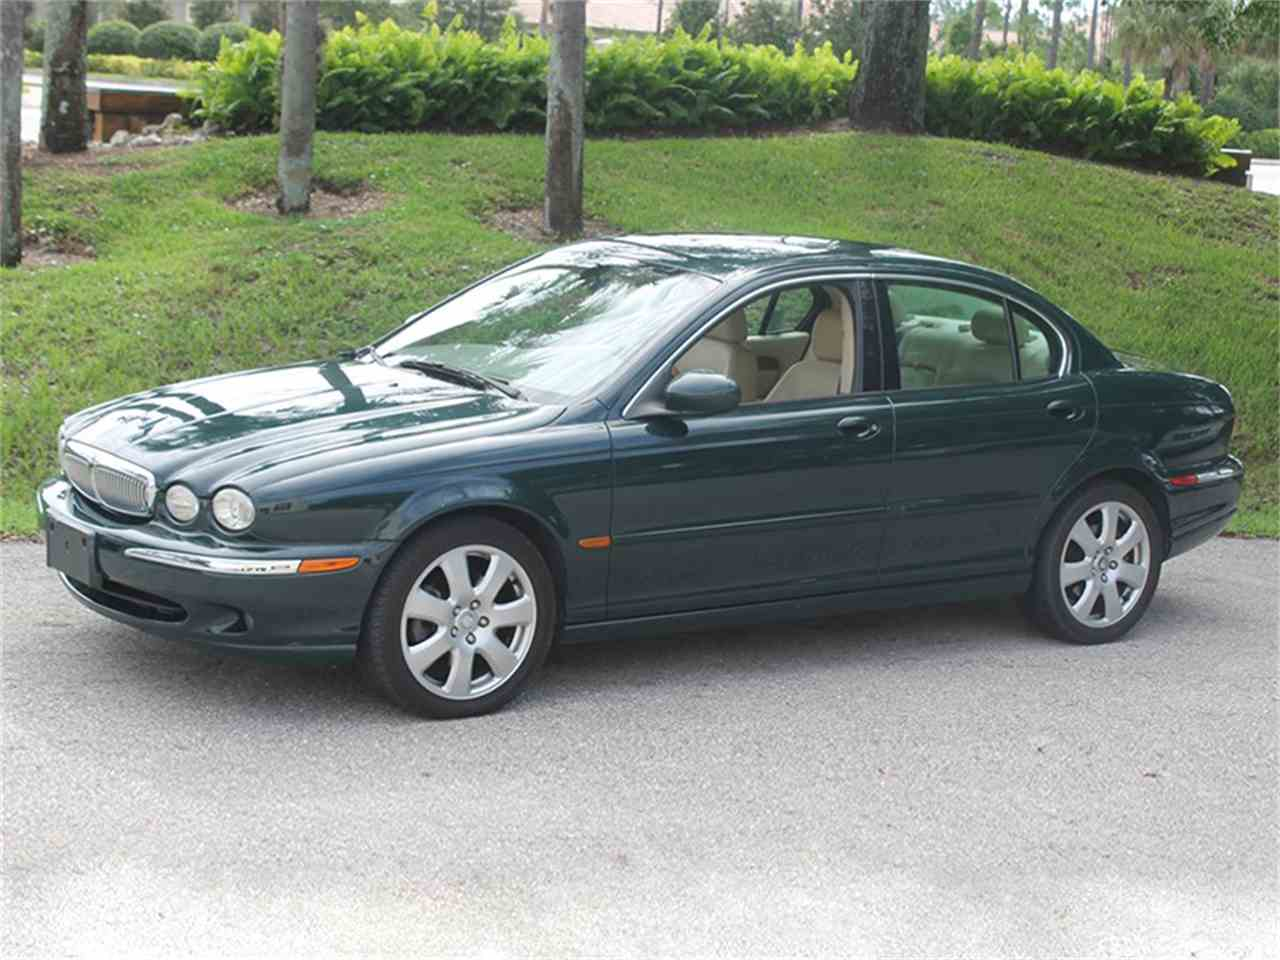 s for no car sale fully orlando used history inventory depot loaded cars fl clean jaguar owner accidents type view